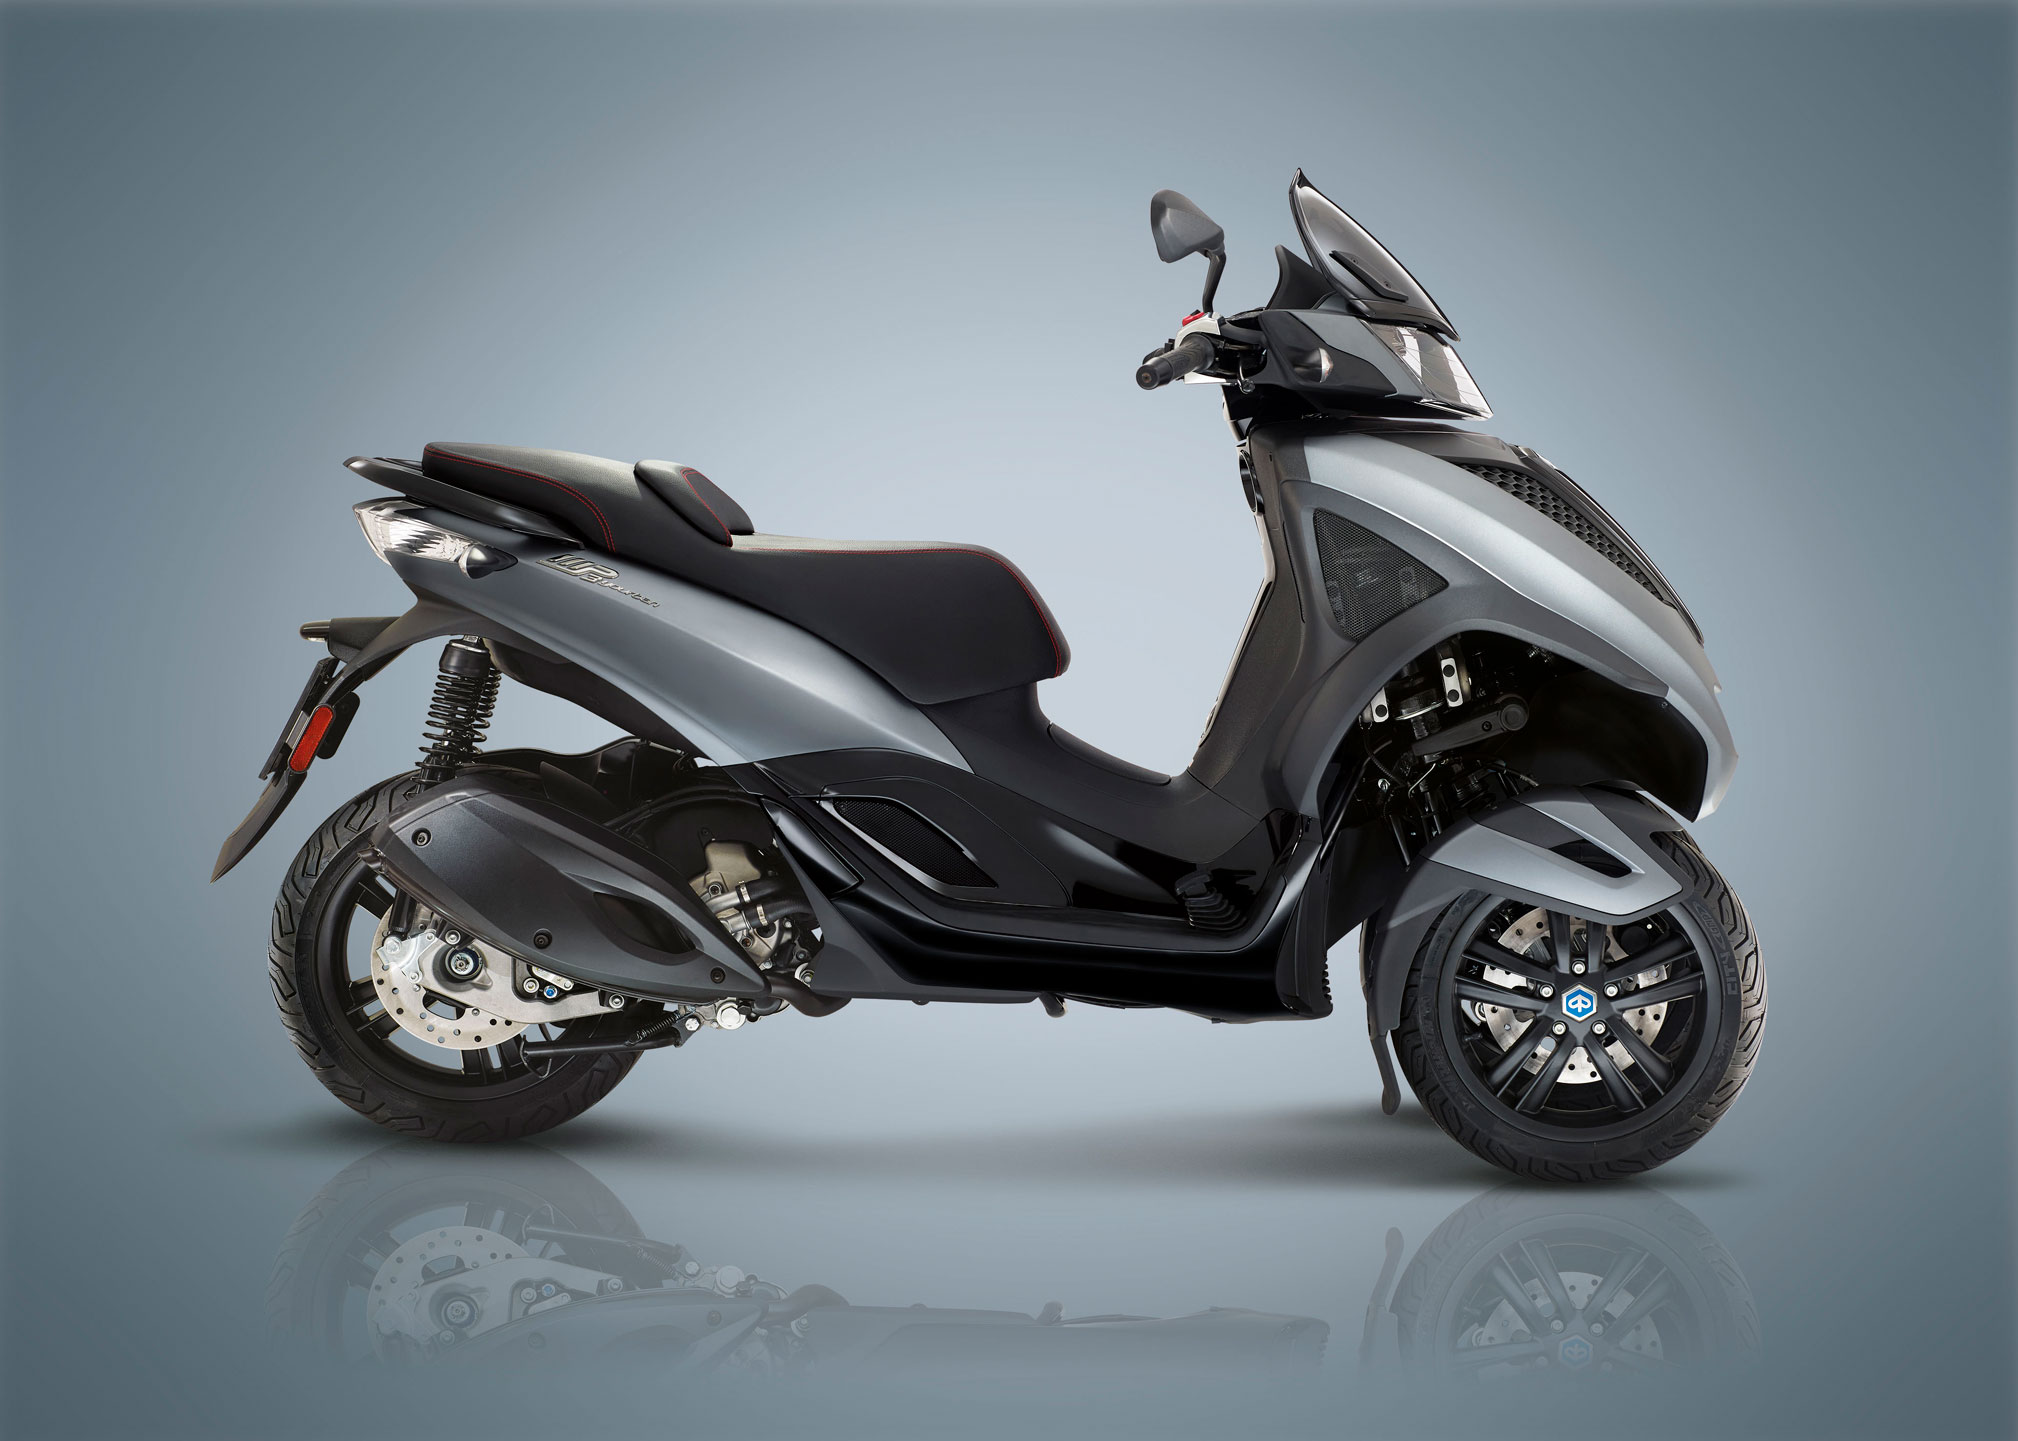 2018 Piaggio Mp3 300 Yourban Lt Review Total Motorcycle